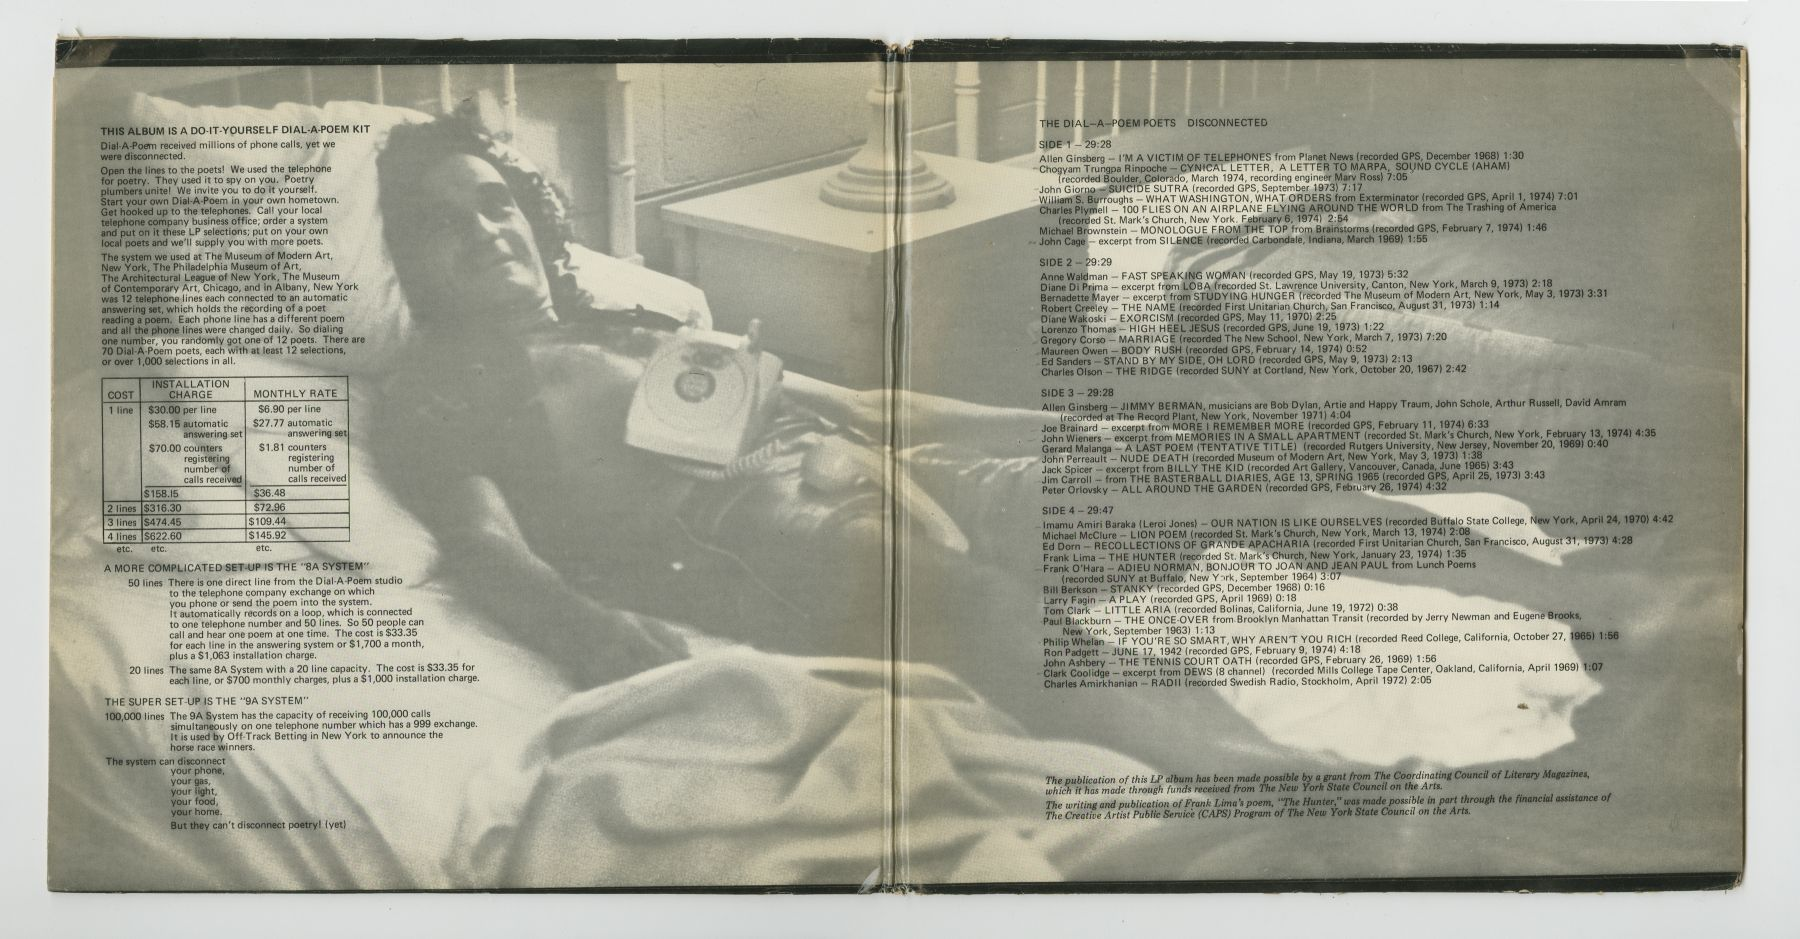 The Dial-A-Poem Poets: Disconnected (1974), inside spread